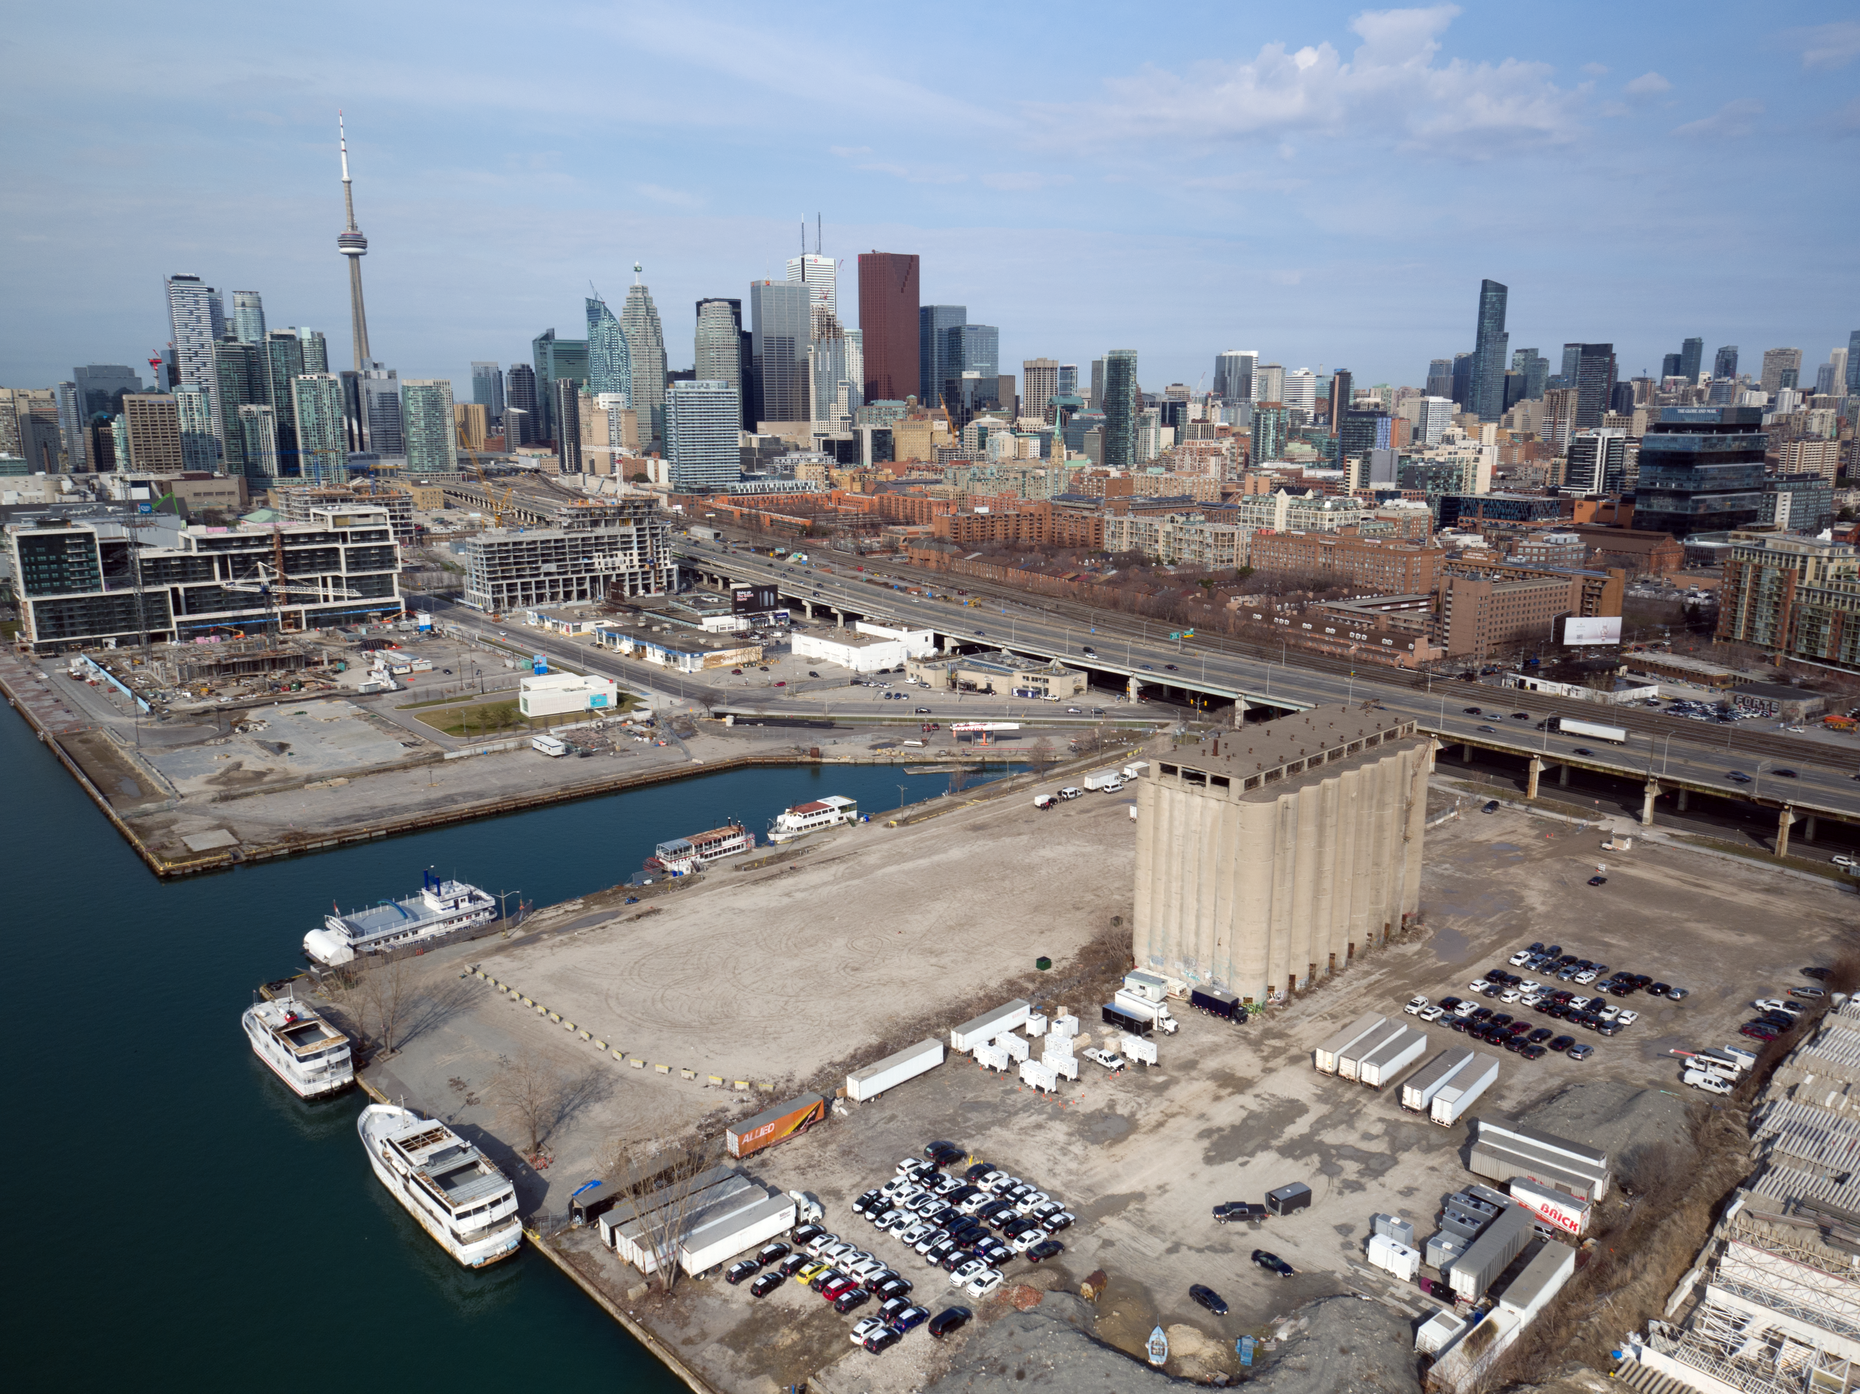 The site of the planned Sidewalk Labs development in Toronto. Photo: Sidewalk Labs